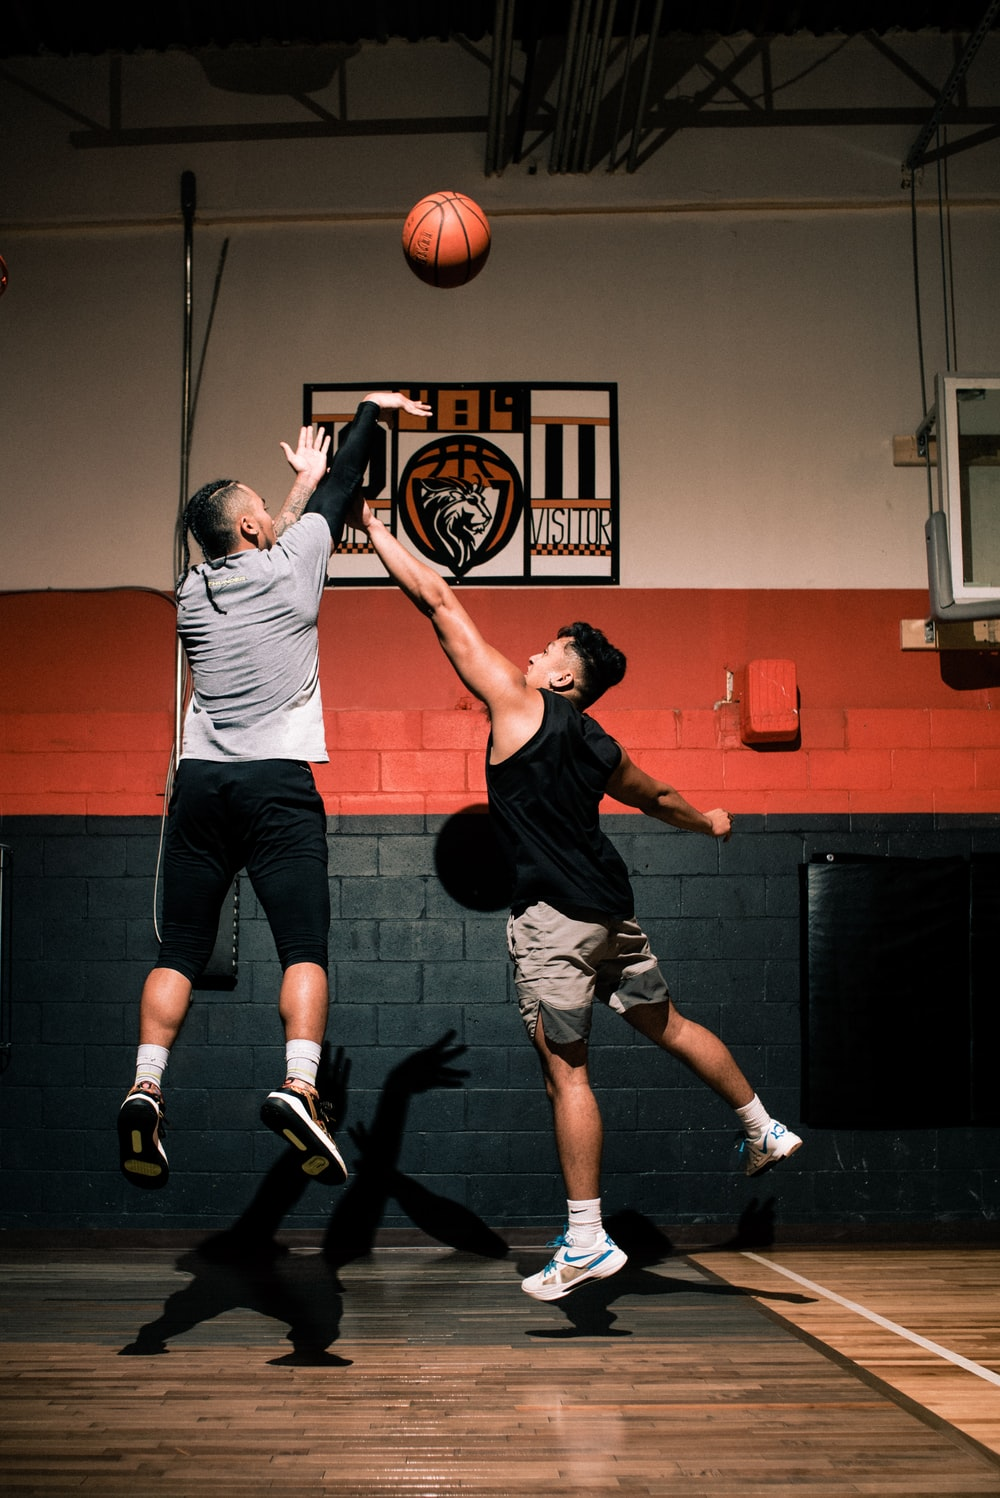 man in gray t-shirt and black pants holding basketball